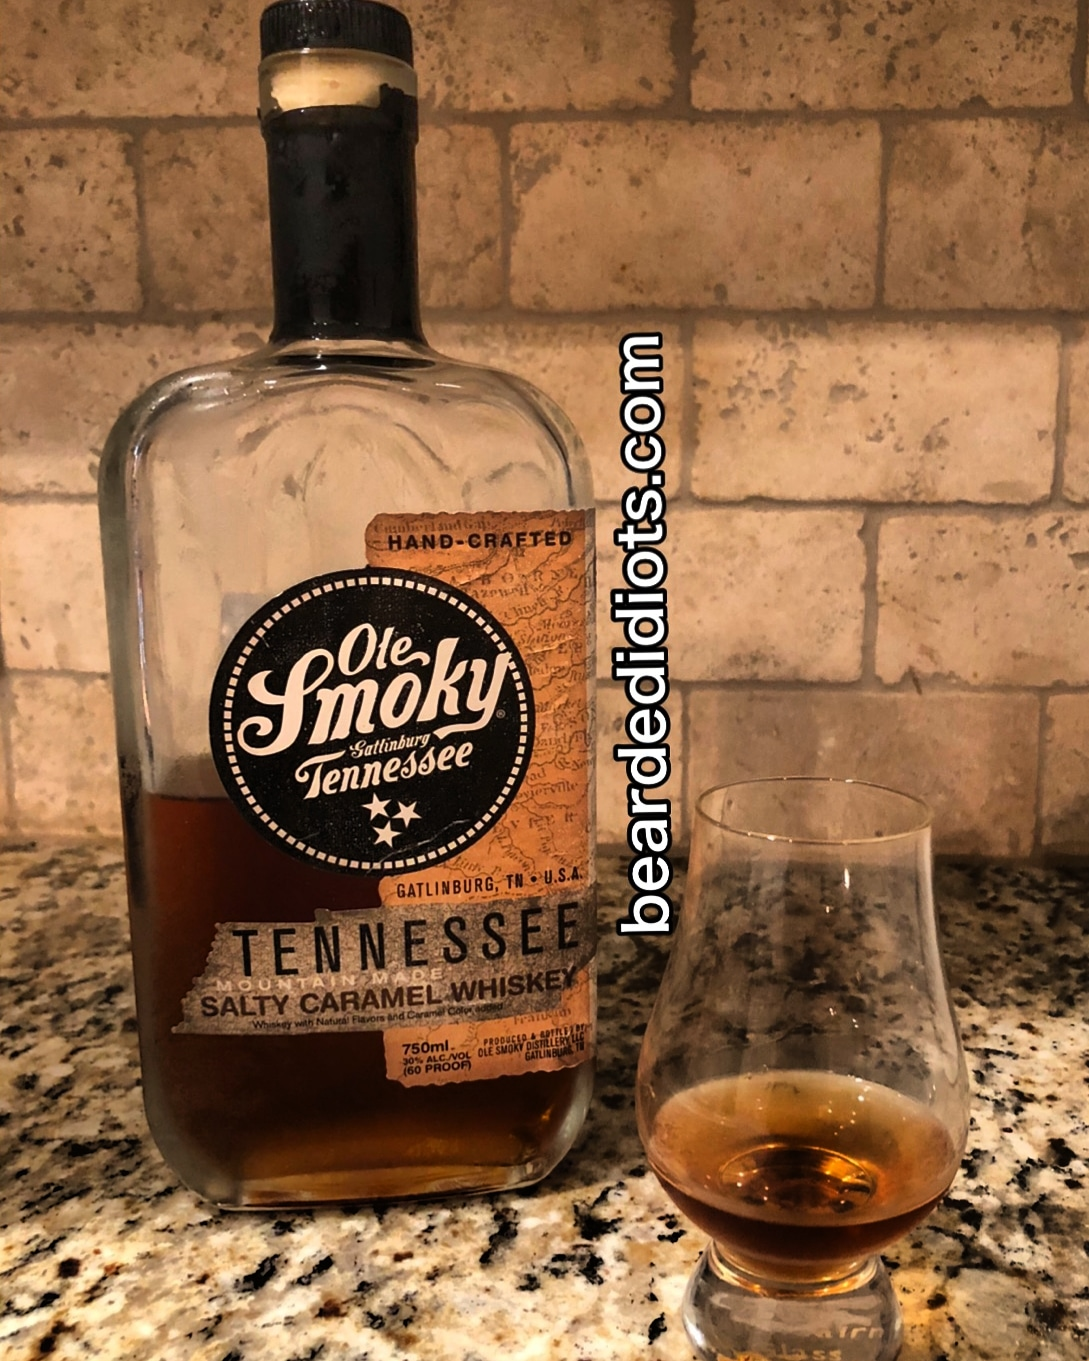 Episode the 14th - A risky whiskey mystery review, The Moon, Kelly's tranny's, simulated reality and deja vu